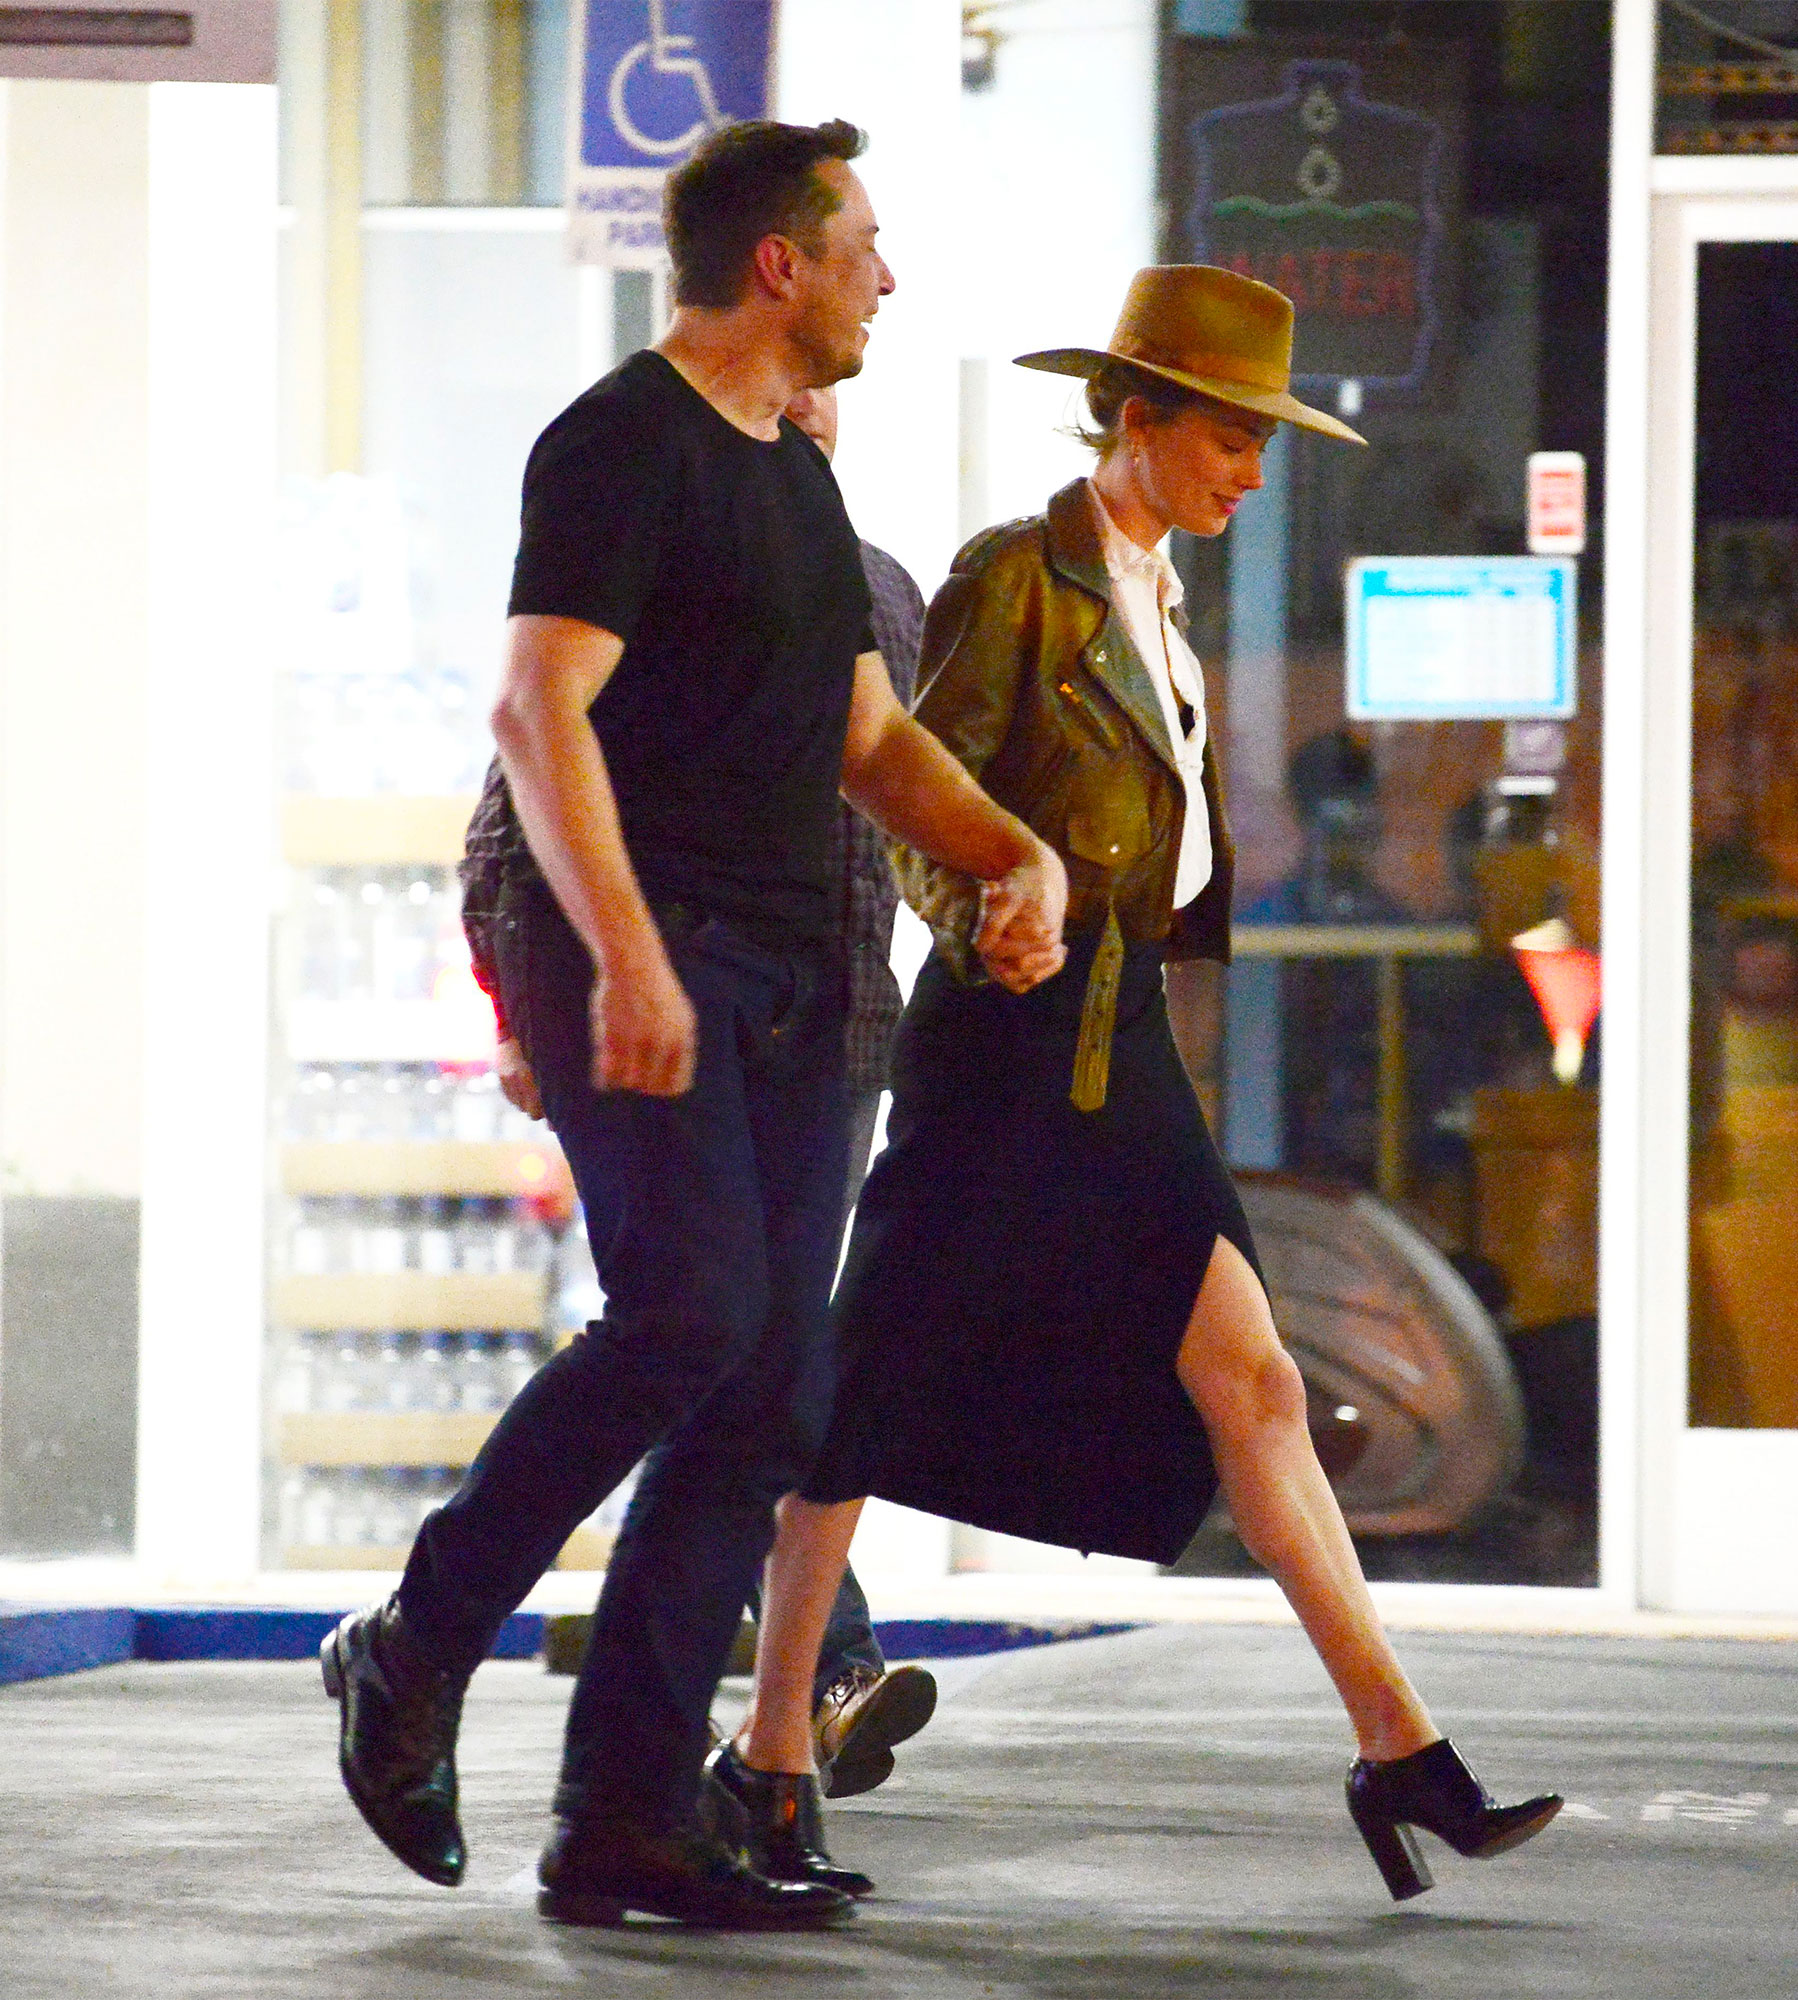 EXCLUSIVE: ** PREMIUM RATES APPLY** Elon Musk and Amber Heard enjoy a romantic date night in Los Angeles!